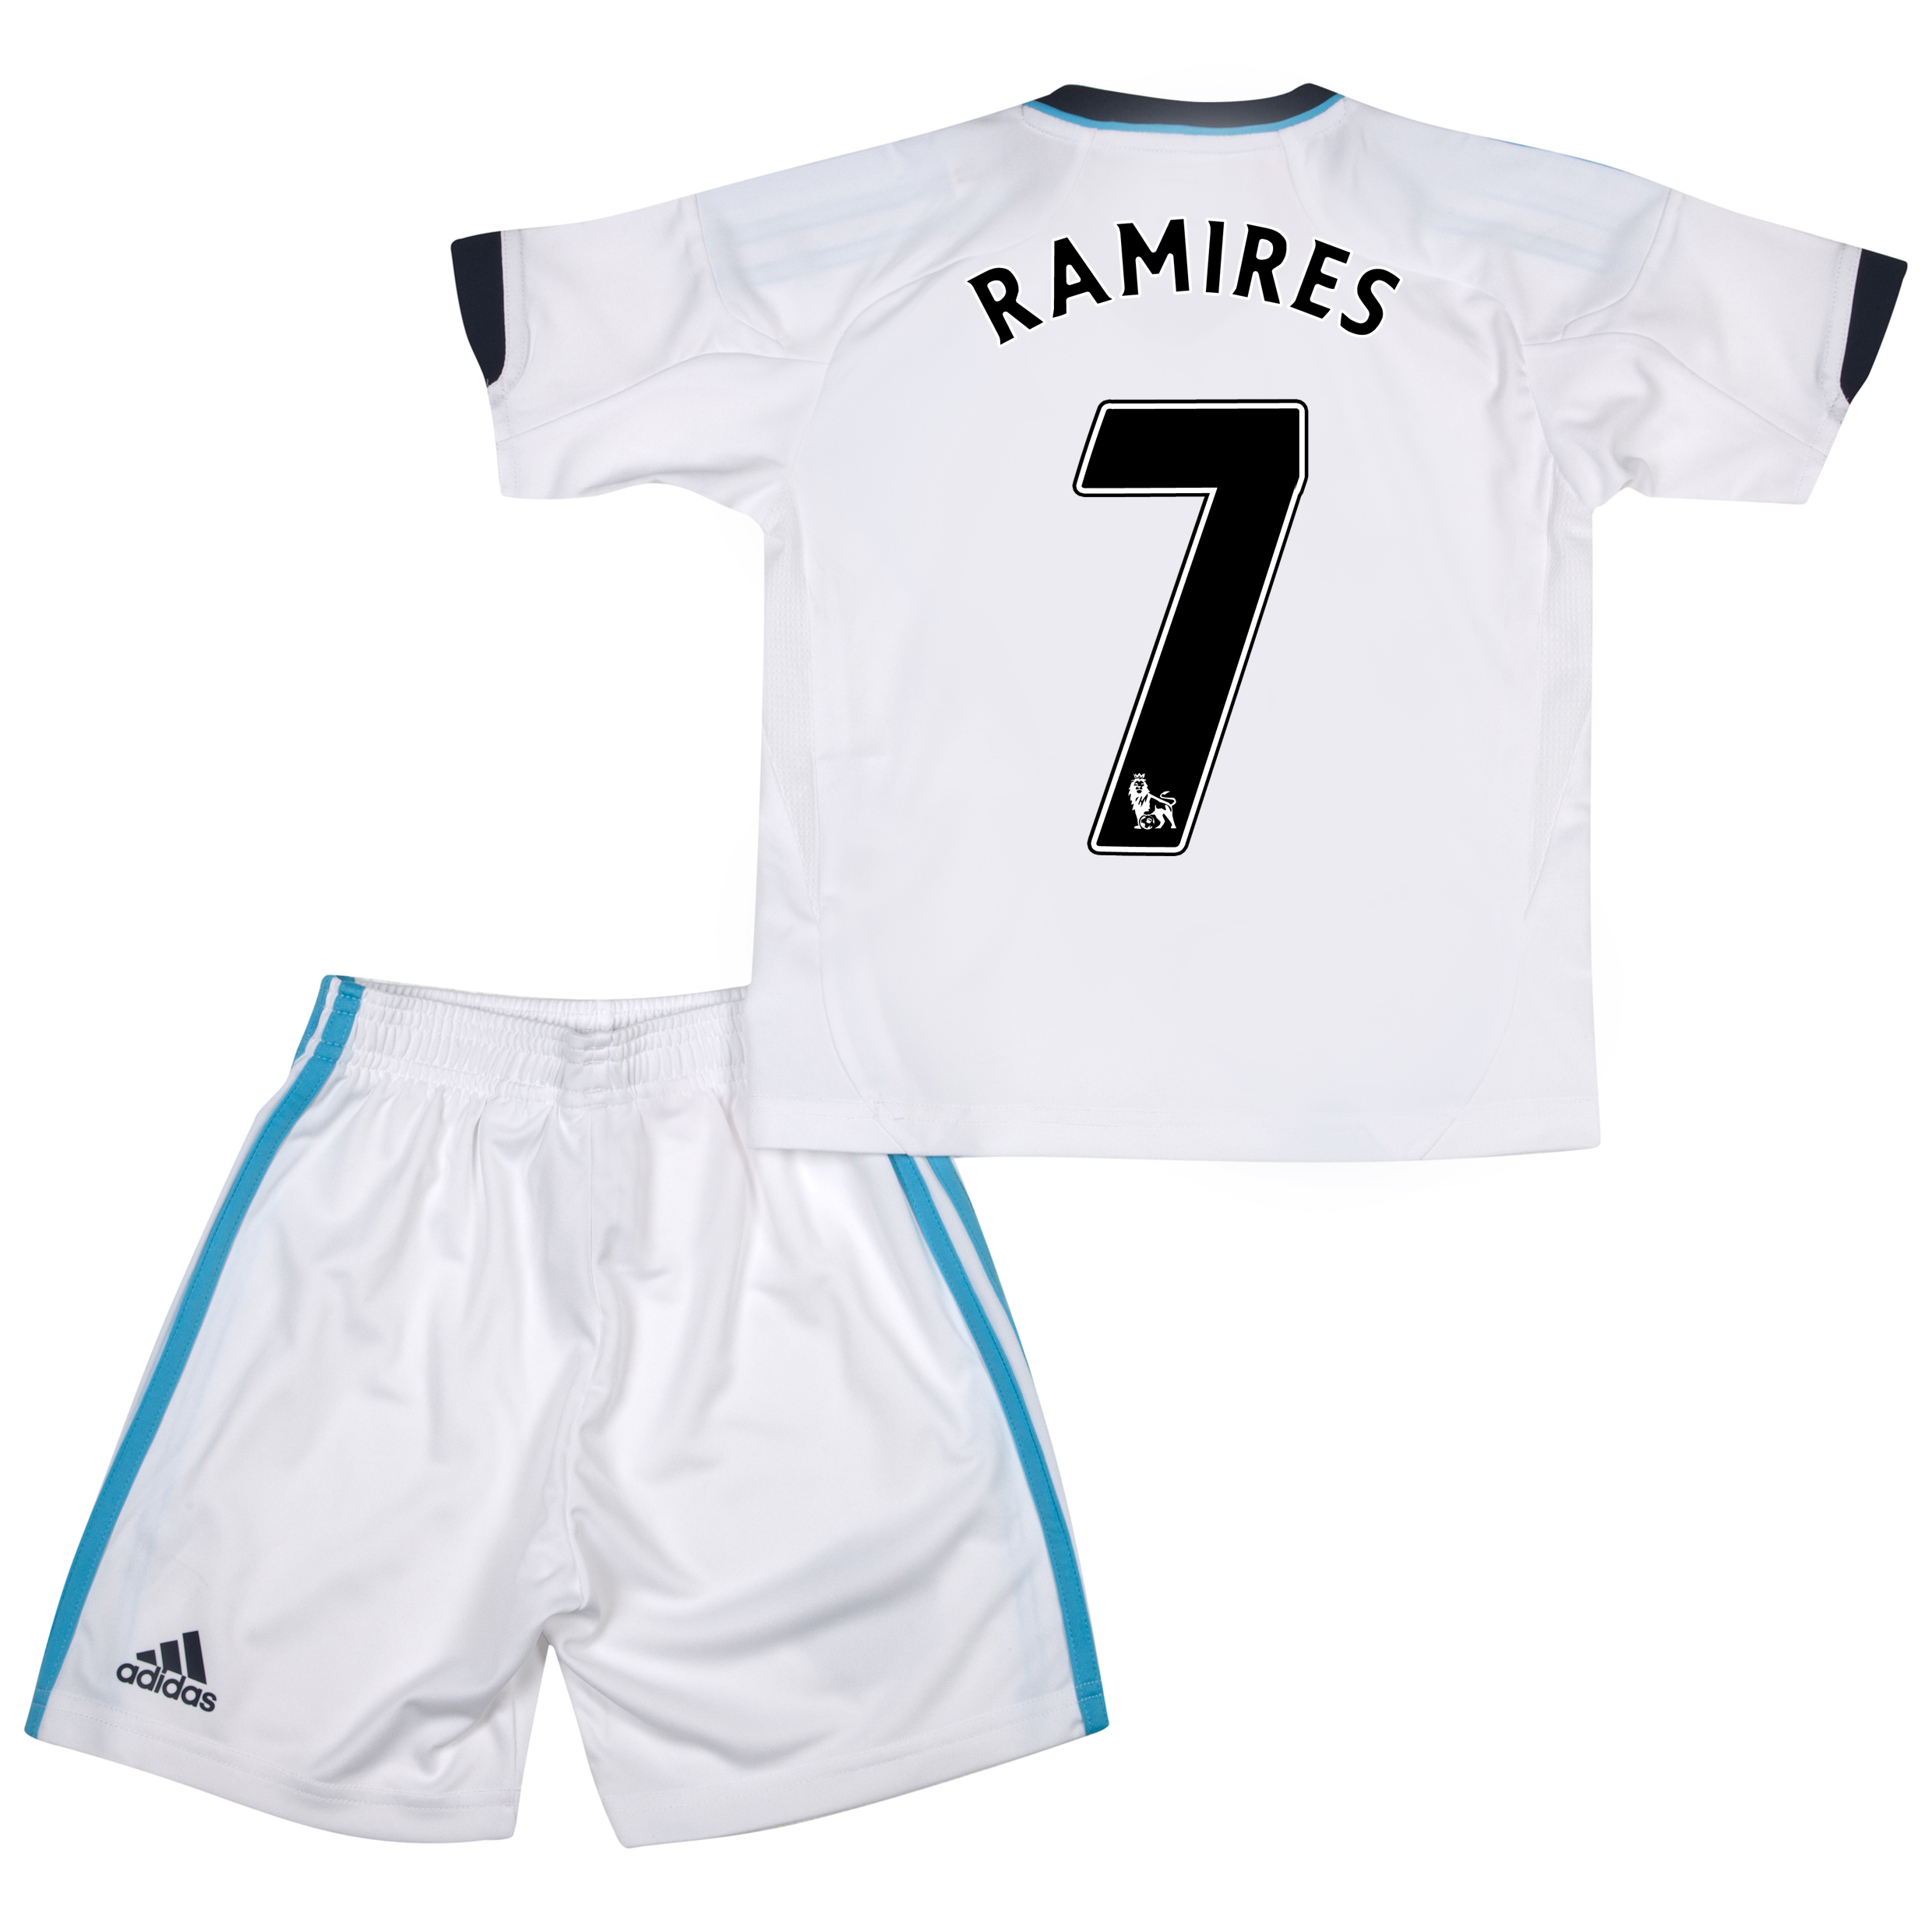 Chelsea Away Mini Kit 2012/13 with Ramires 7 printing